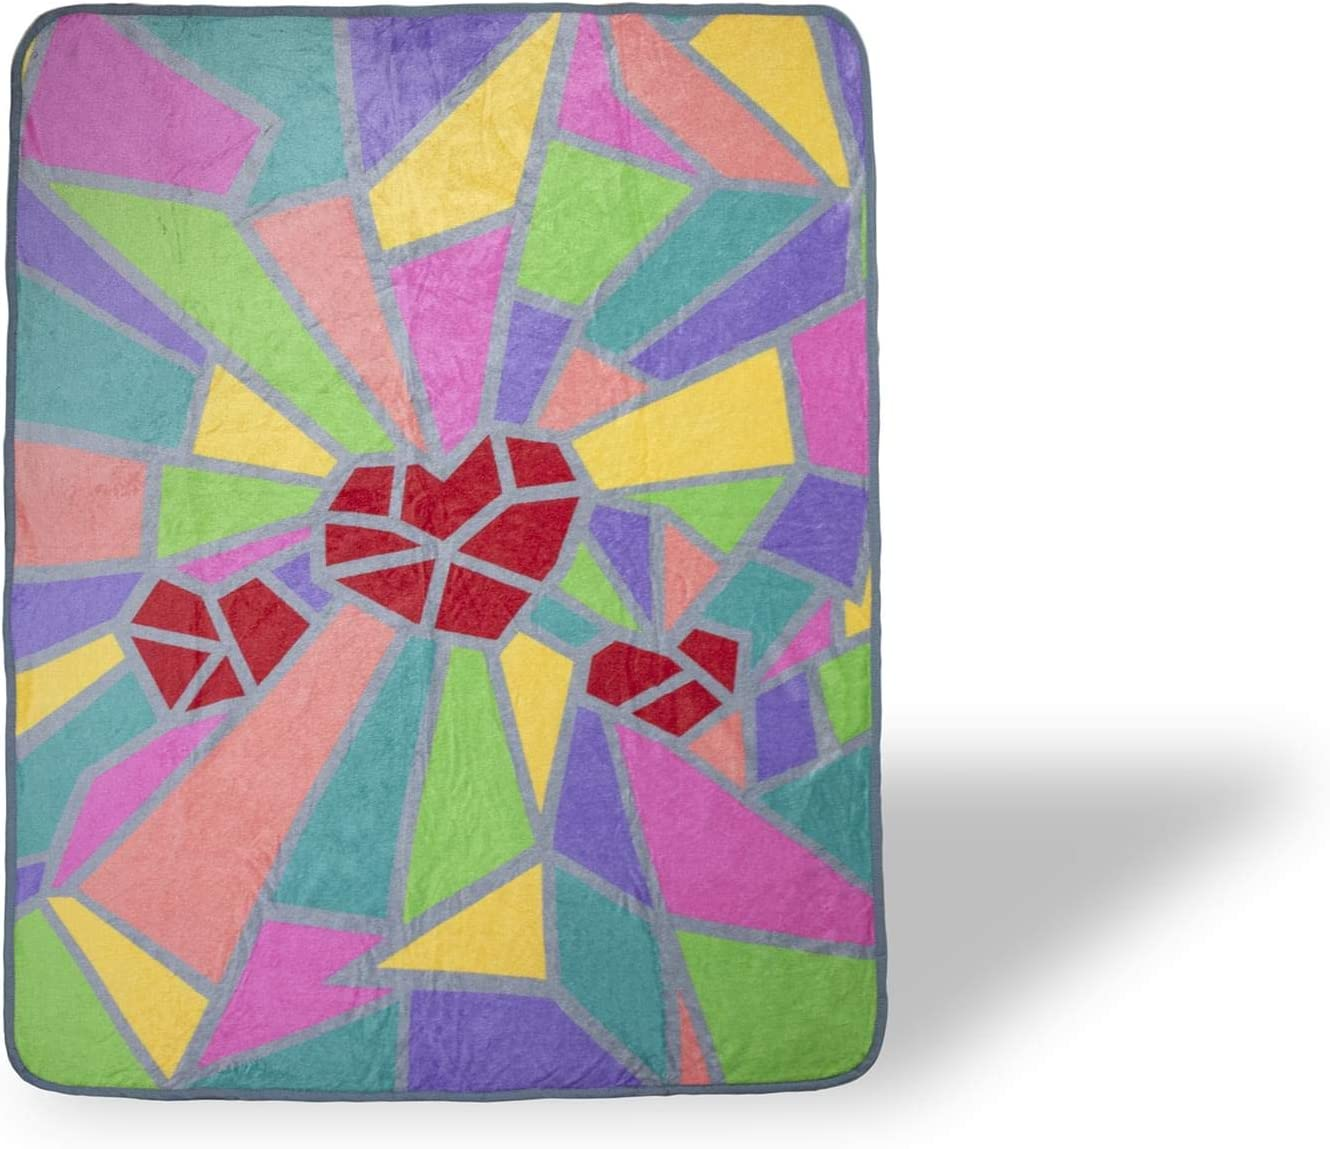 2020 Sidewalk Chalk Inspired Mosaic Heart We are in This Together Throw Blanket   Super Soft Lightweight Fleece Wrap   Quarantine Gifts for Friends and Family   45 x 60 Inches